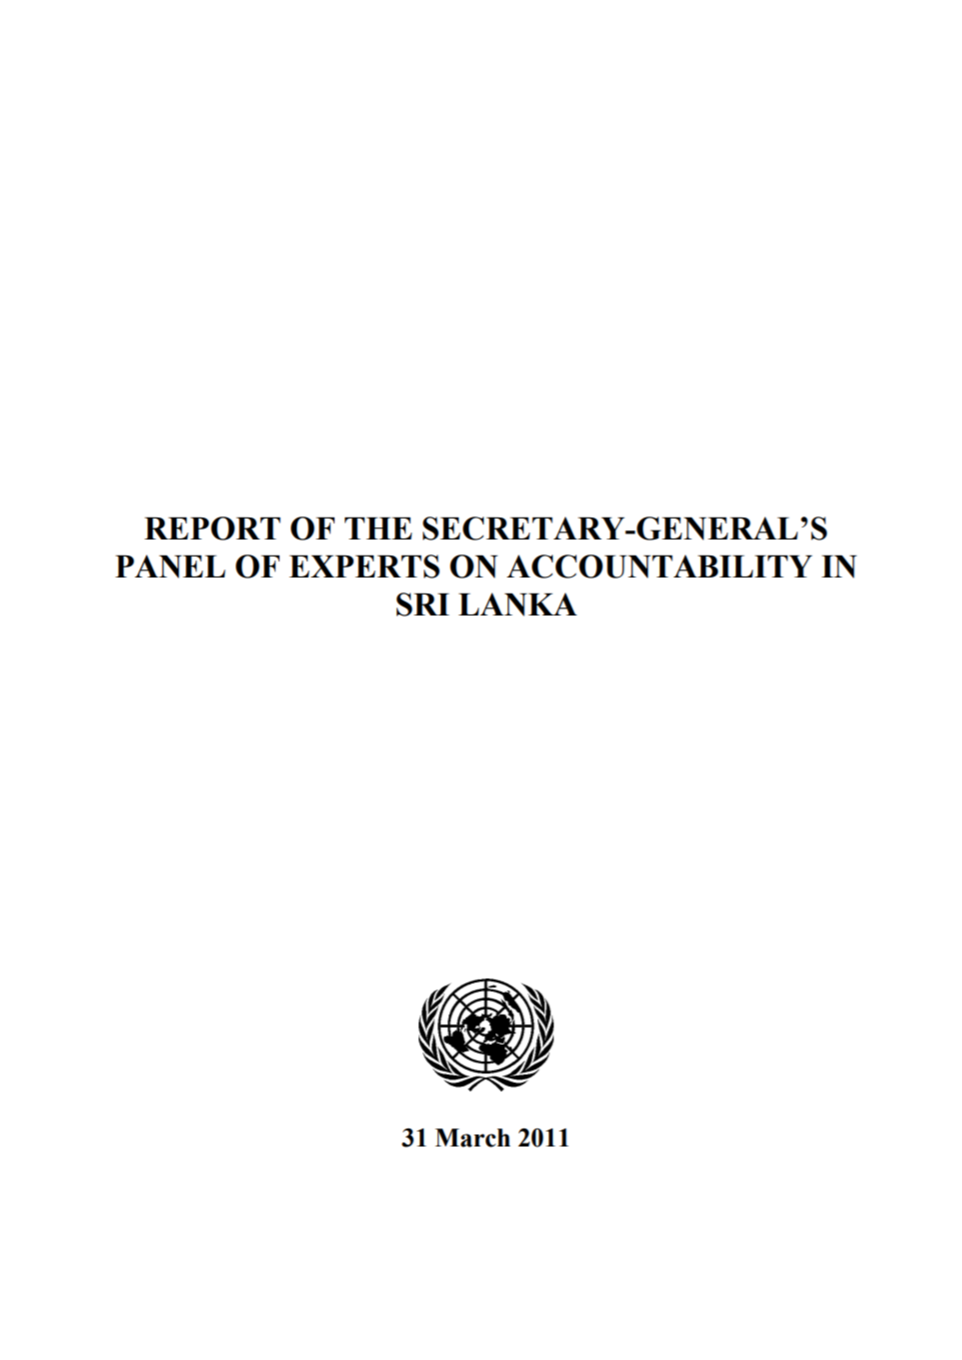 UN Panel of Experts Report on Accountability in Sri Lanka, March 2011